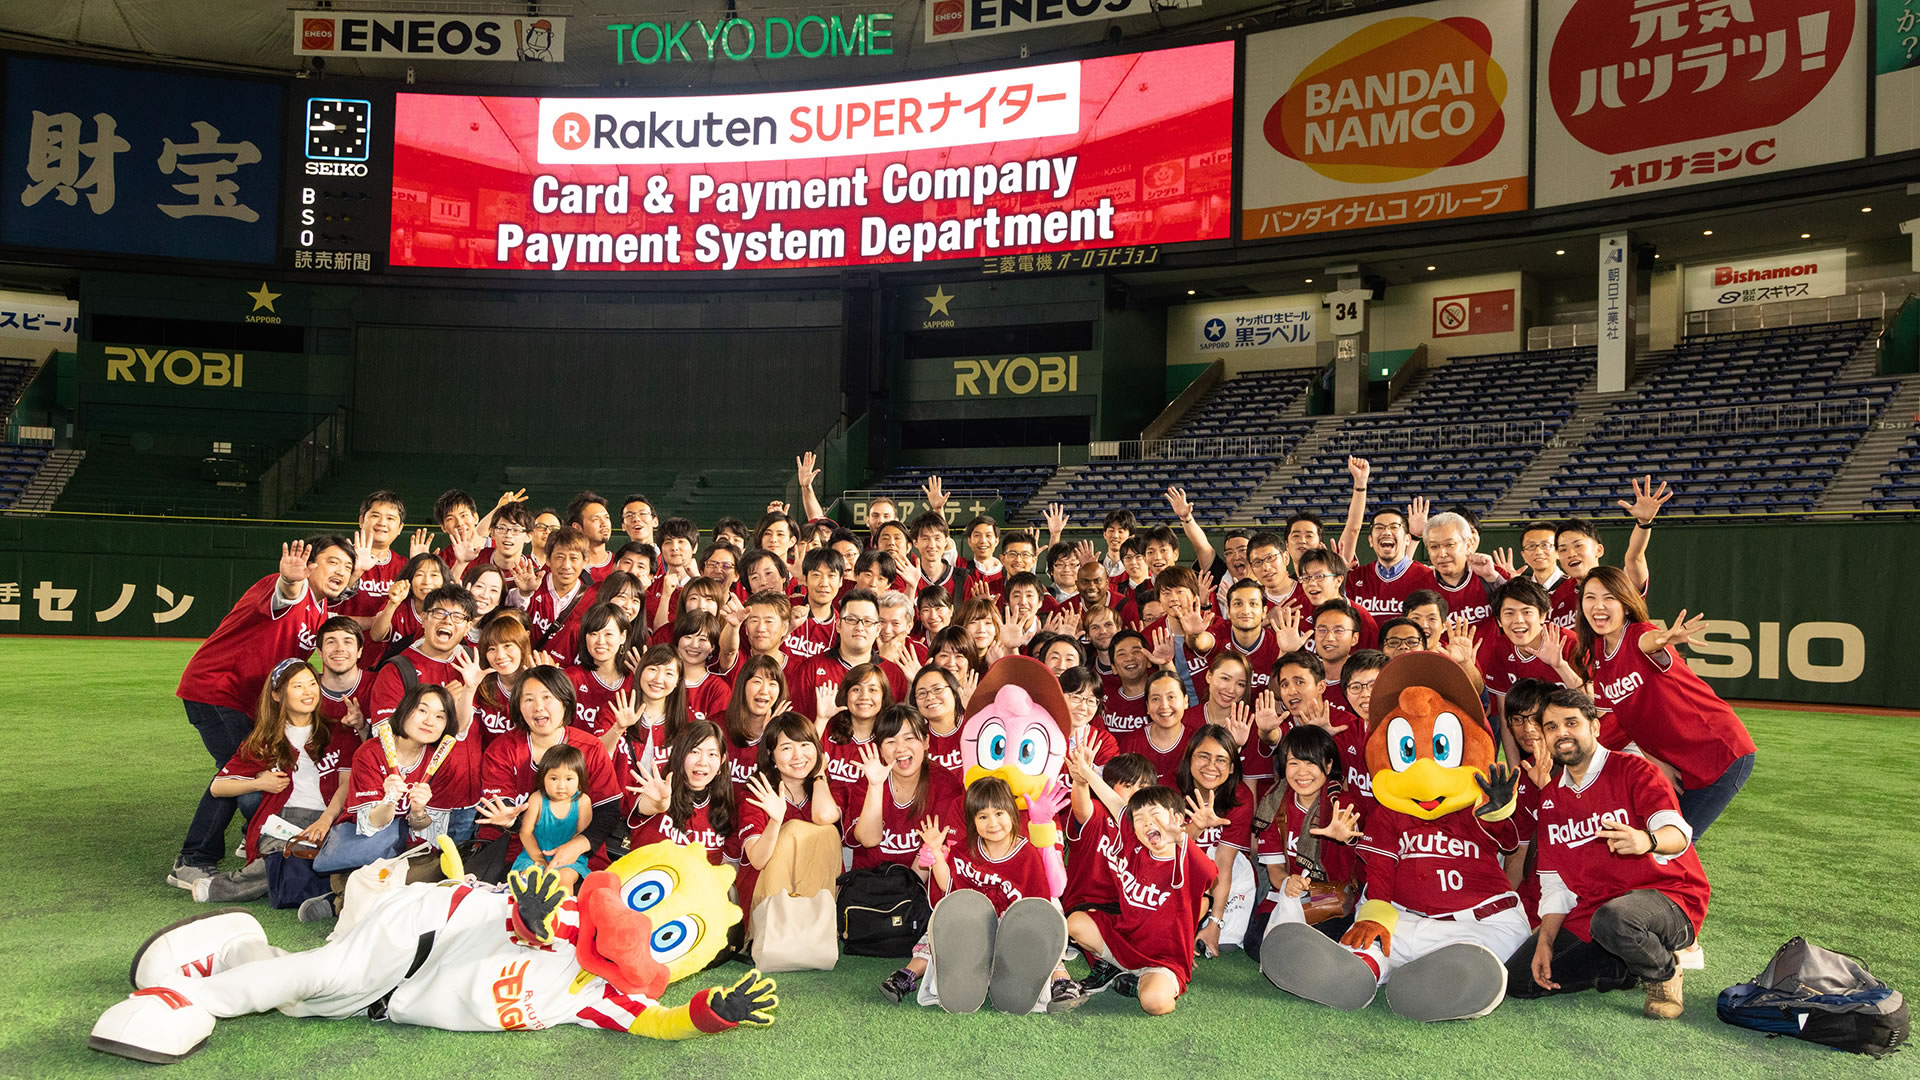 Rakuten Super Baseball Game Turns Tokyo Dome to Crimson Red!